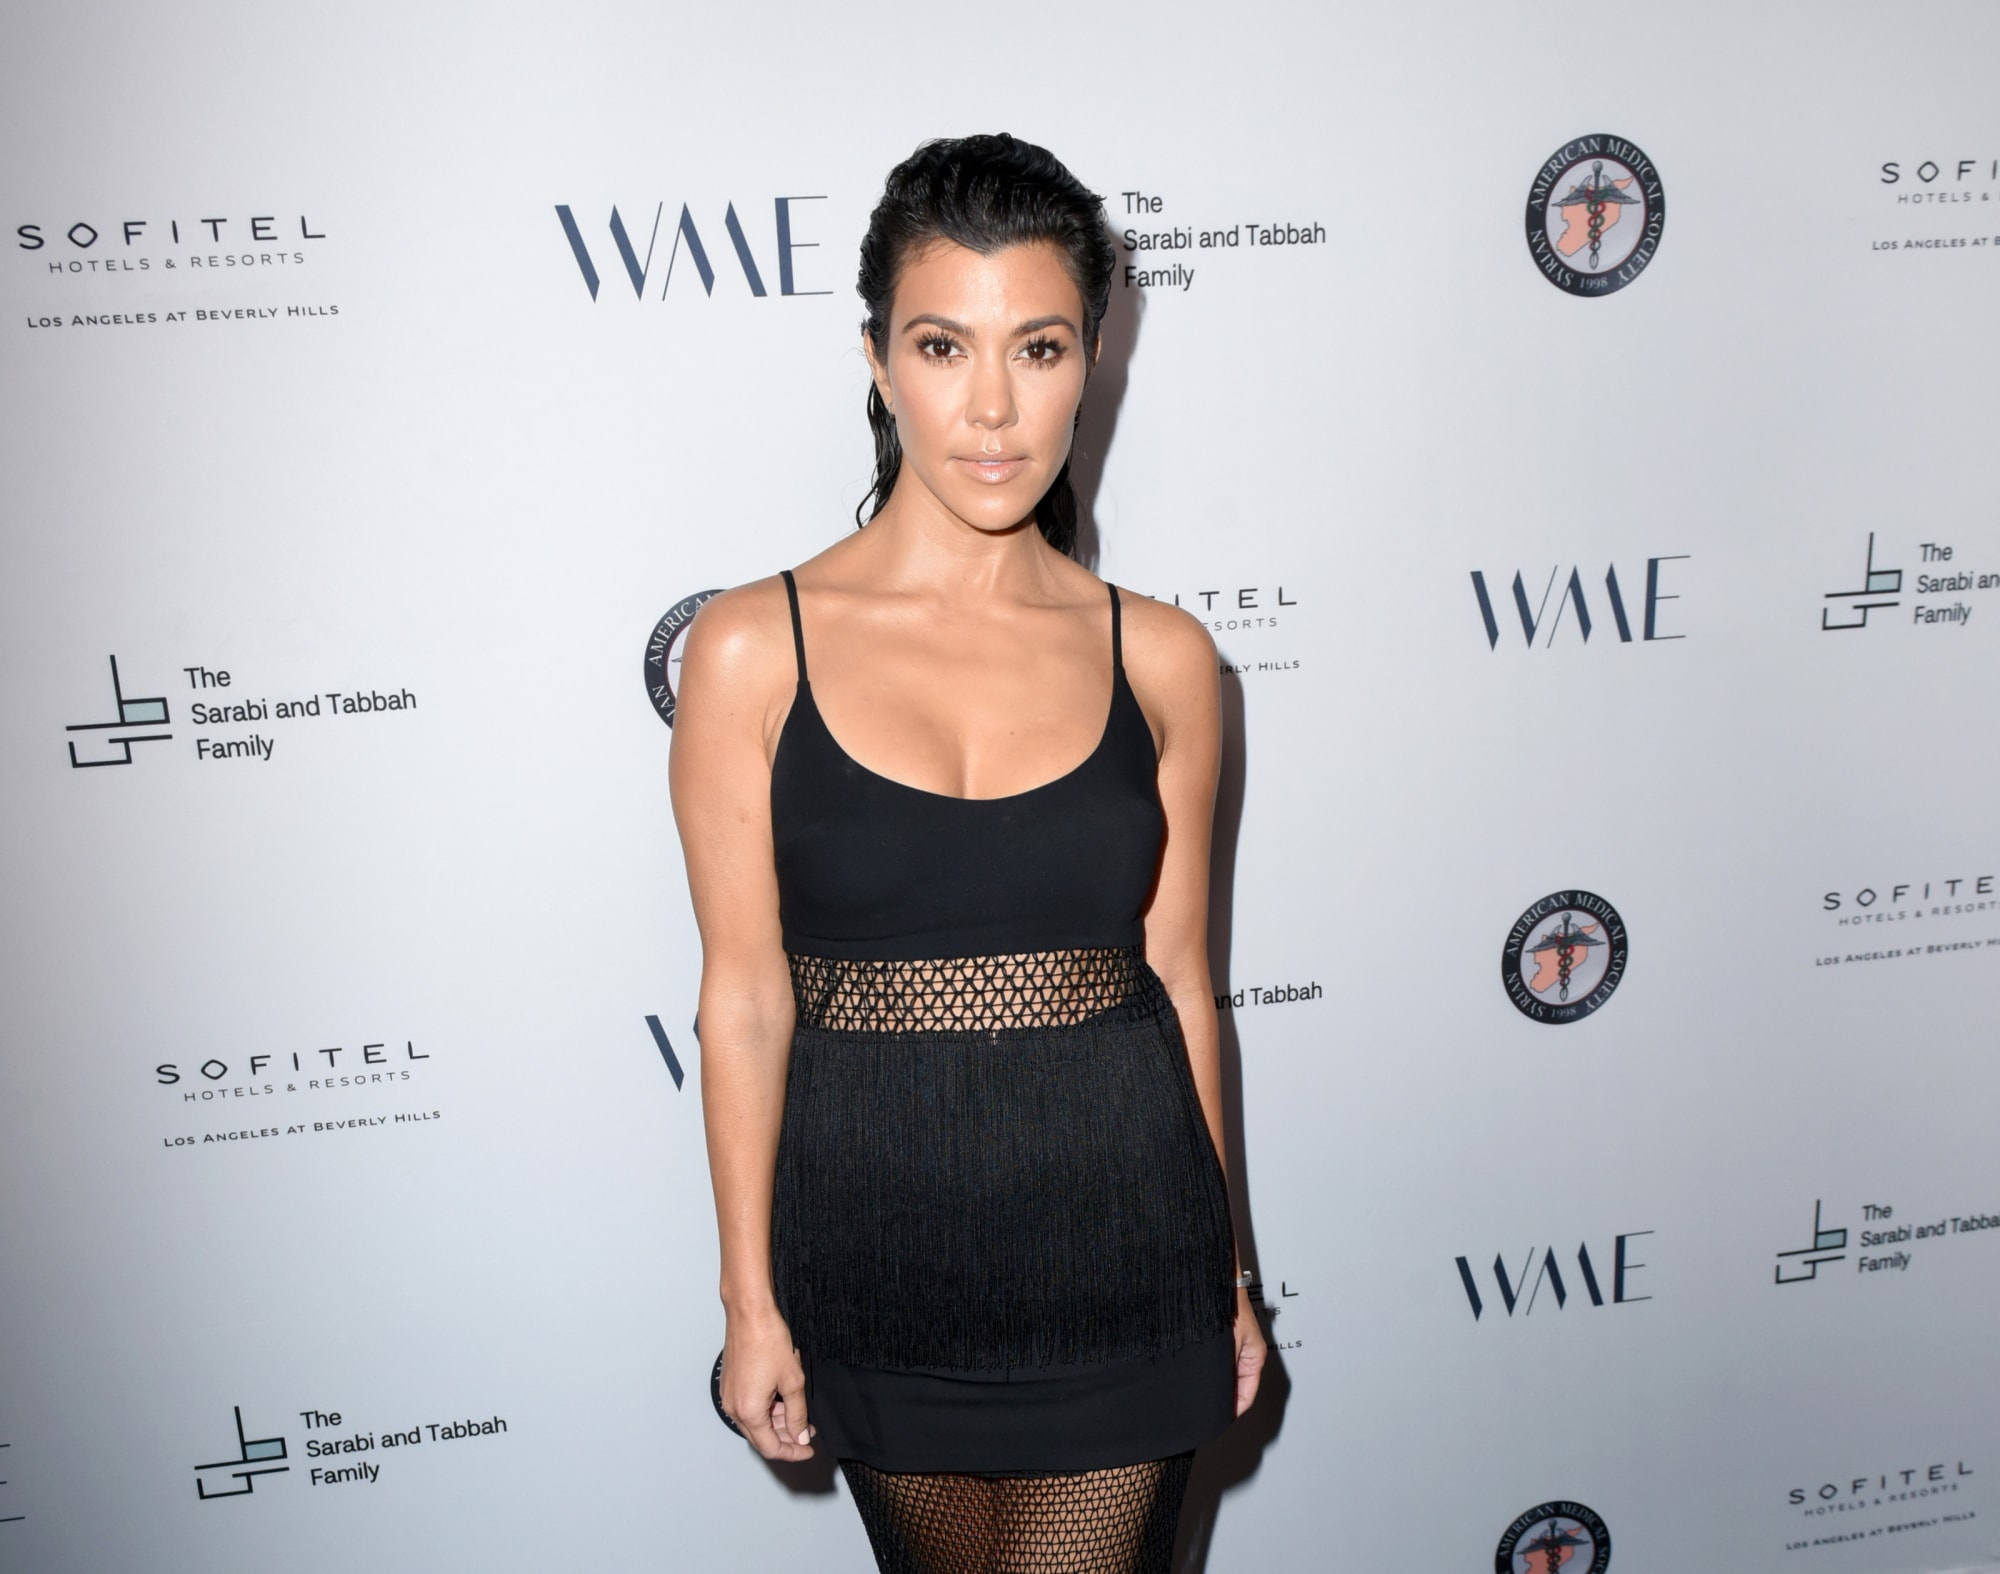 What does Kourtney Kardashian outside of Keeping Up with the Kardashians?